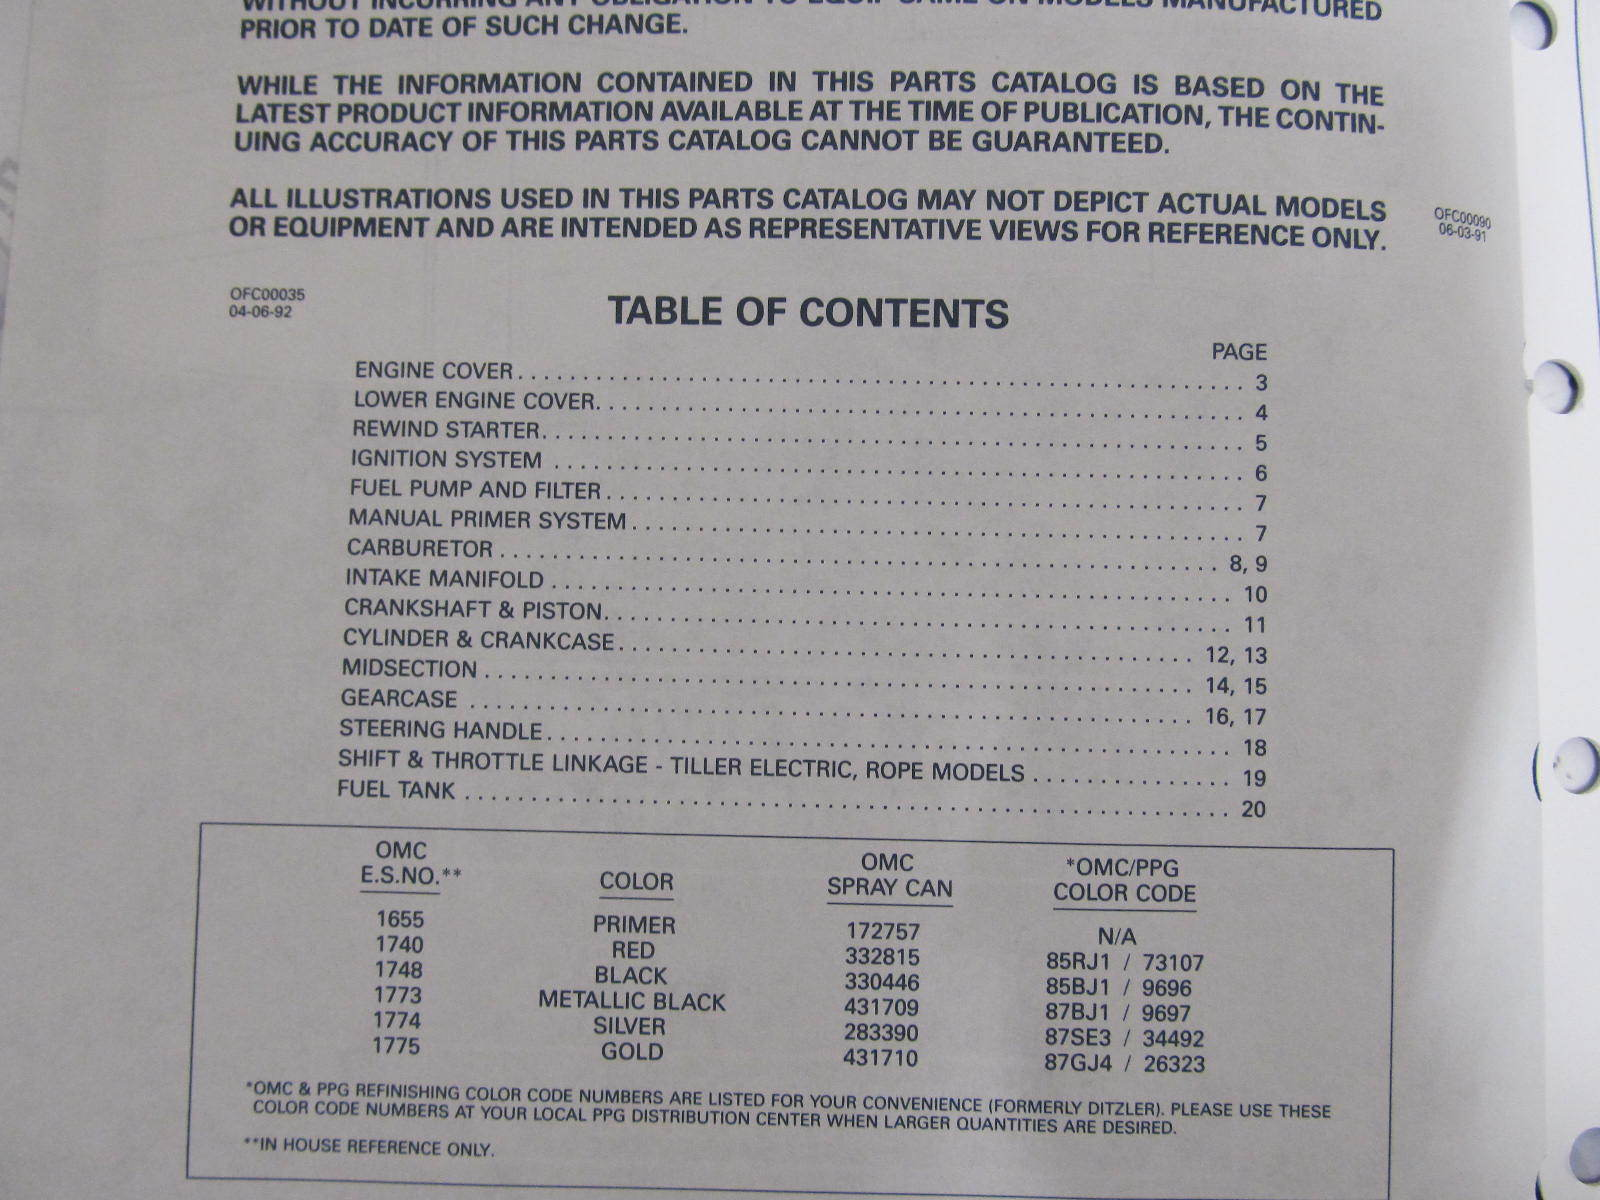 434991 1992 OMC Evinrude Johnson Outboard Parts Catalog 65 HP COMM Rope